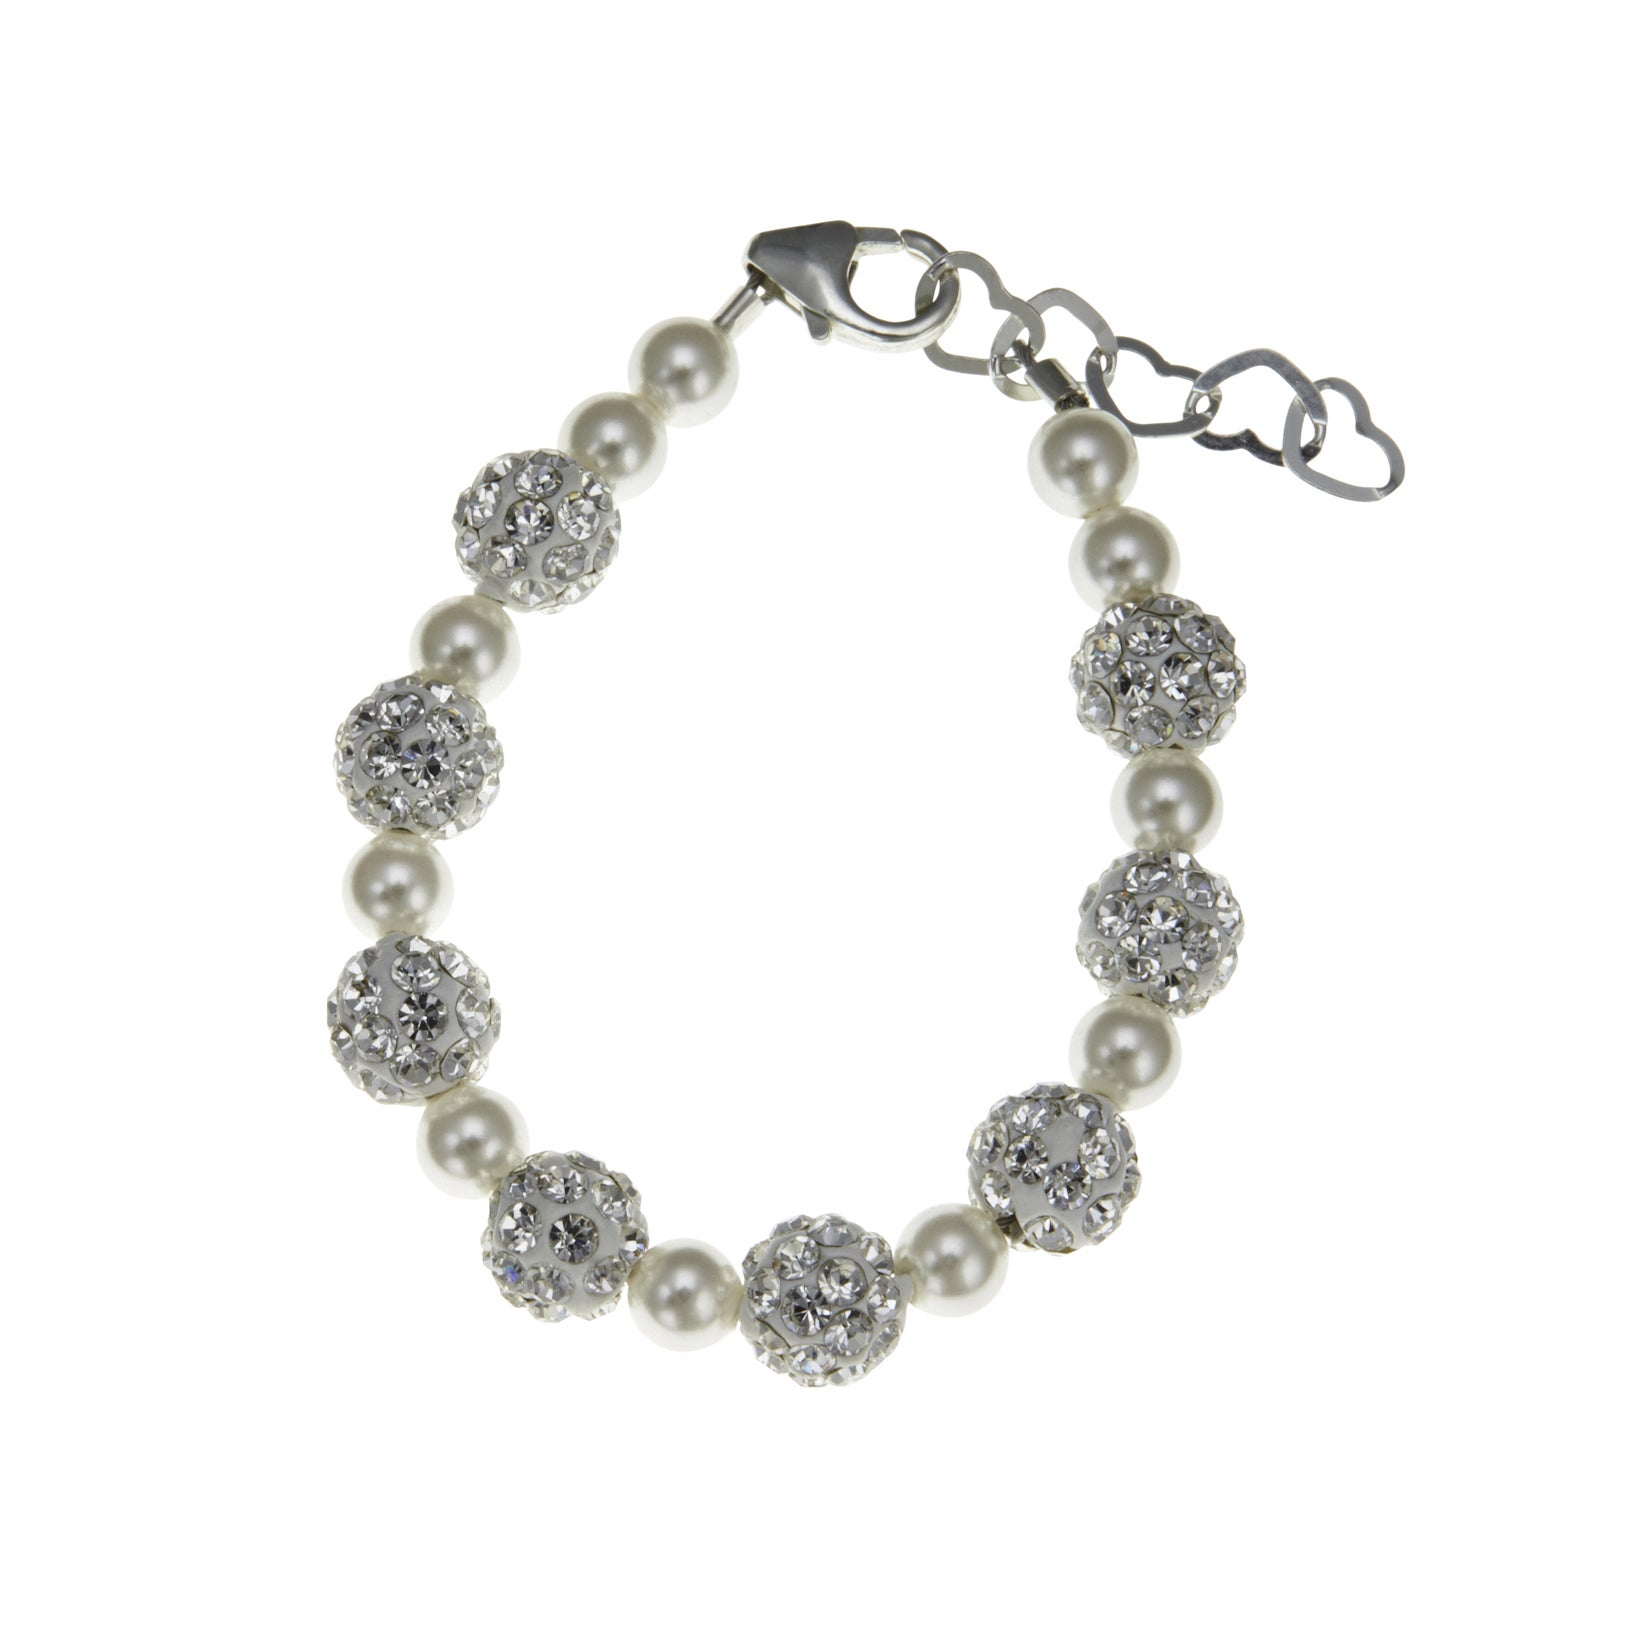 928ce6313 Made with Swarovski Elements White Simulated Cultured Pearls with Beads  Child Bracelet